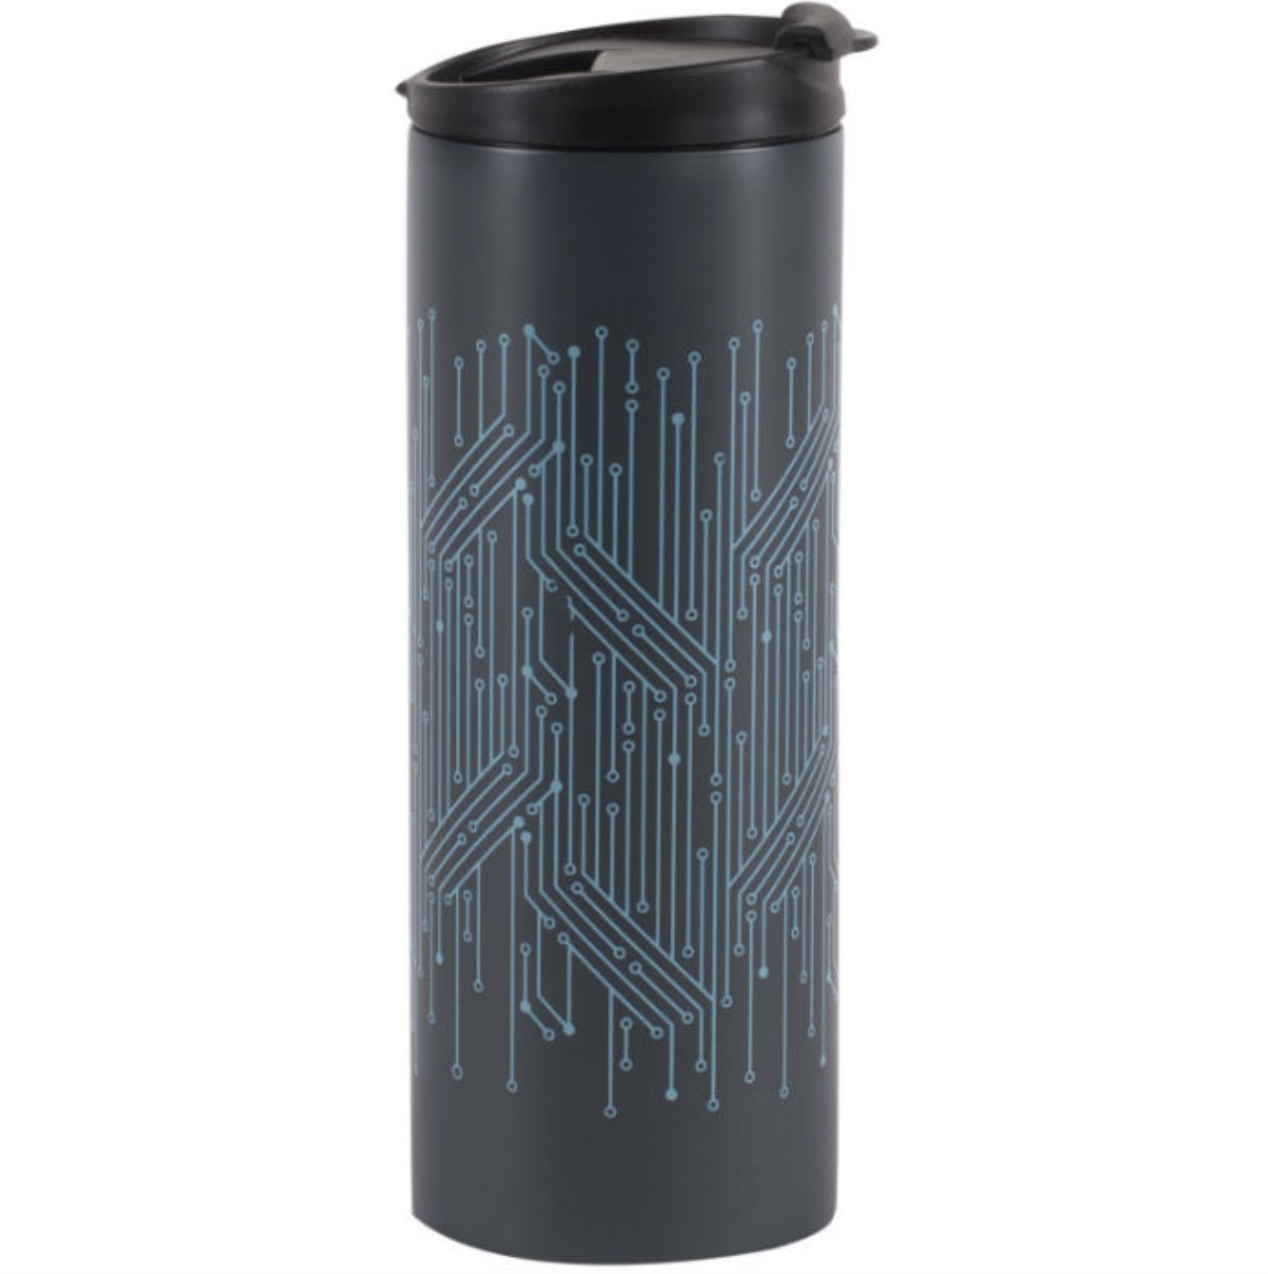 CIRCUIT TRAVEL MUG 400ML. BEAU & ELLIOT LUNCH ON THE GO